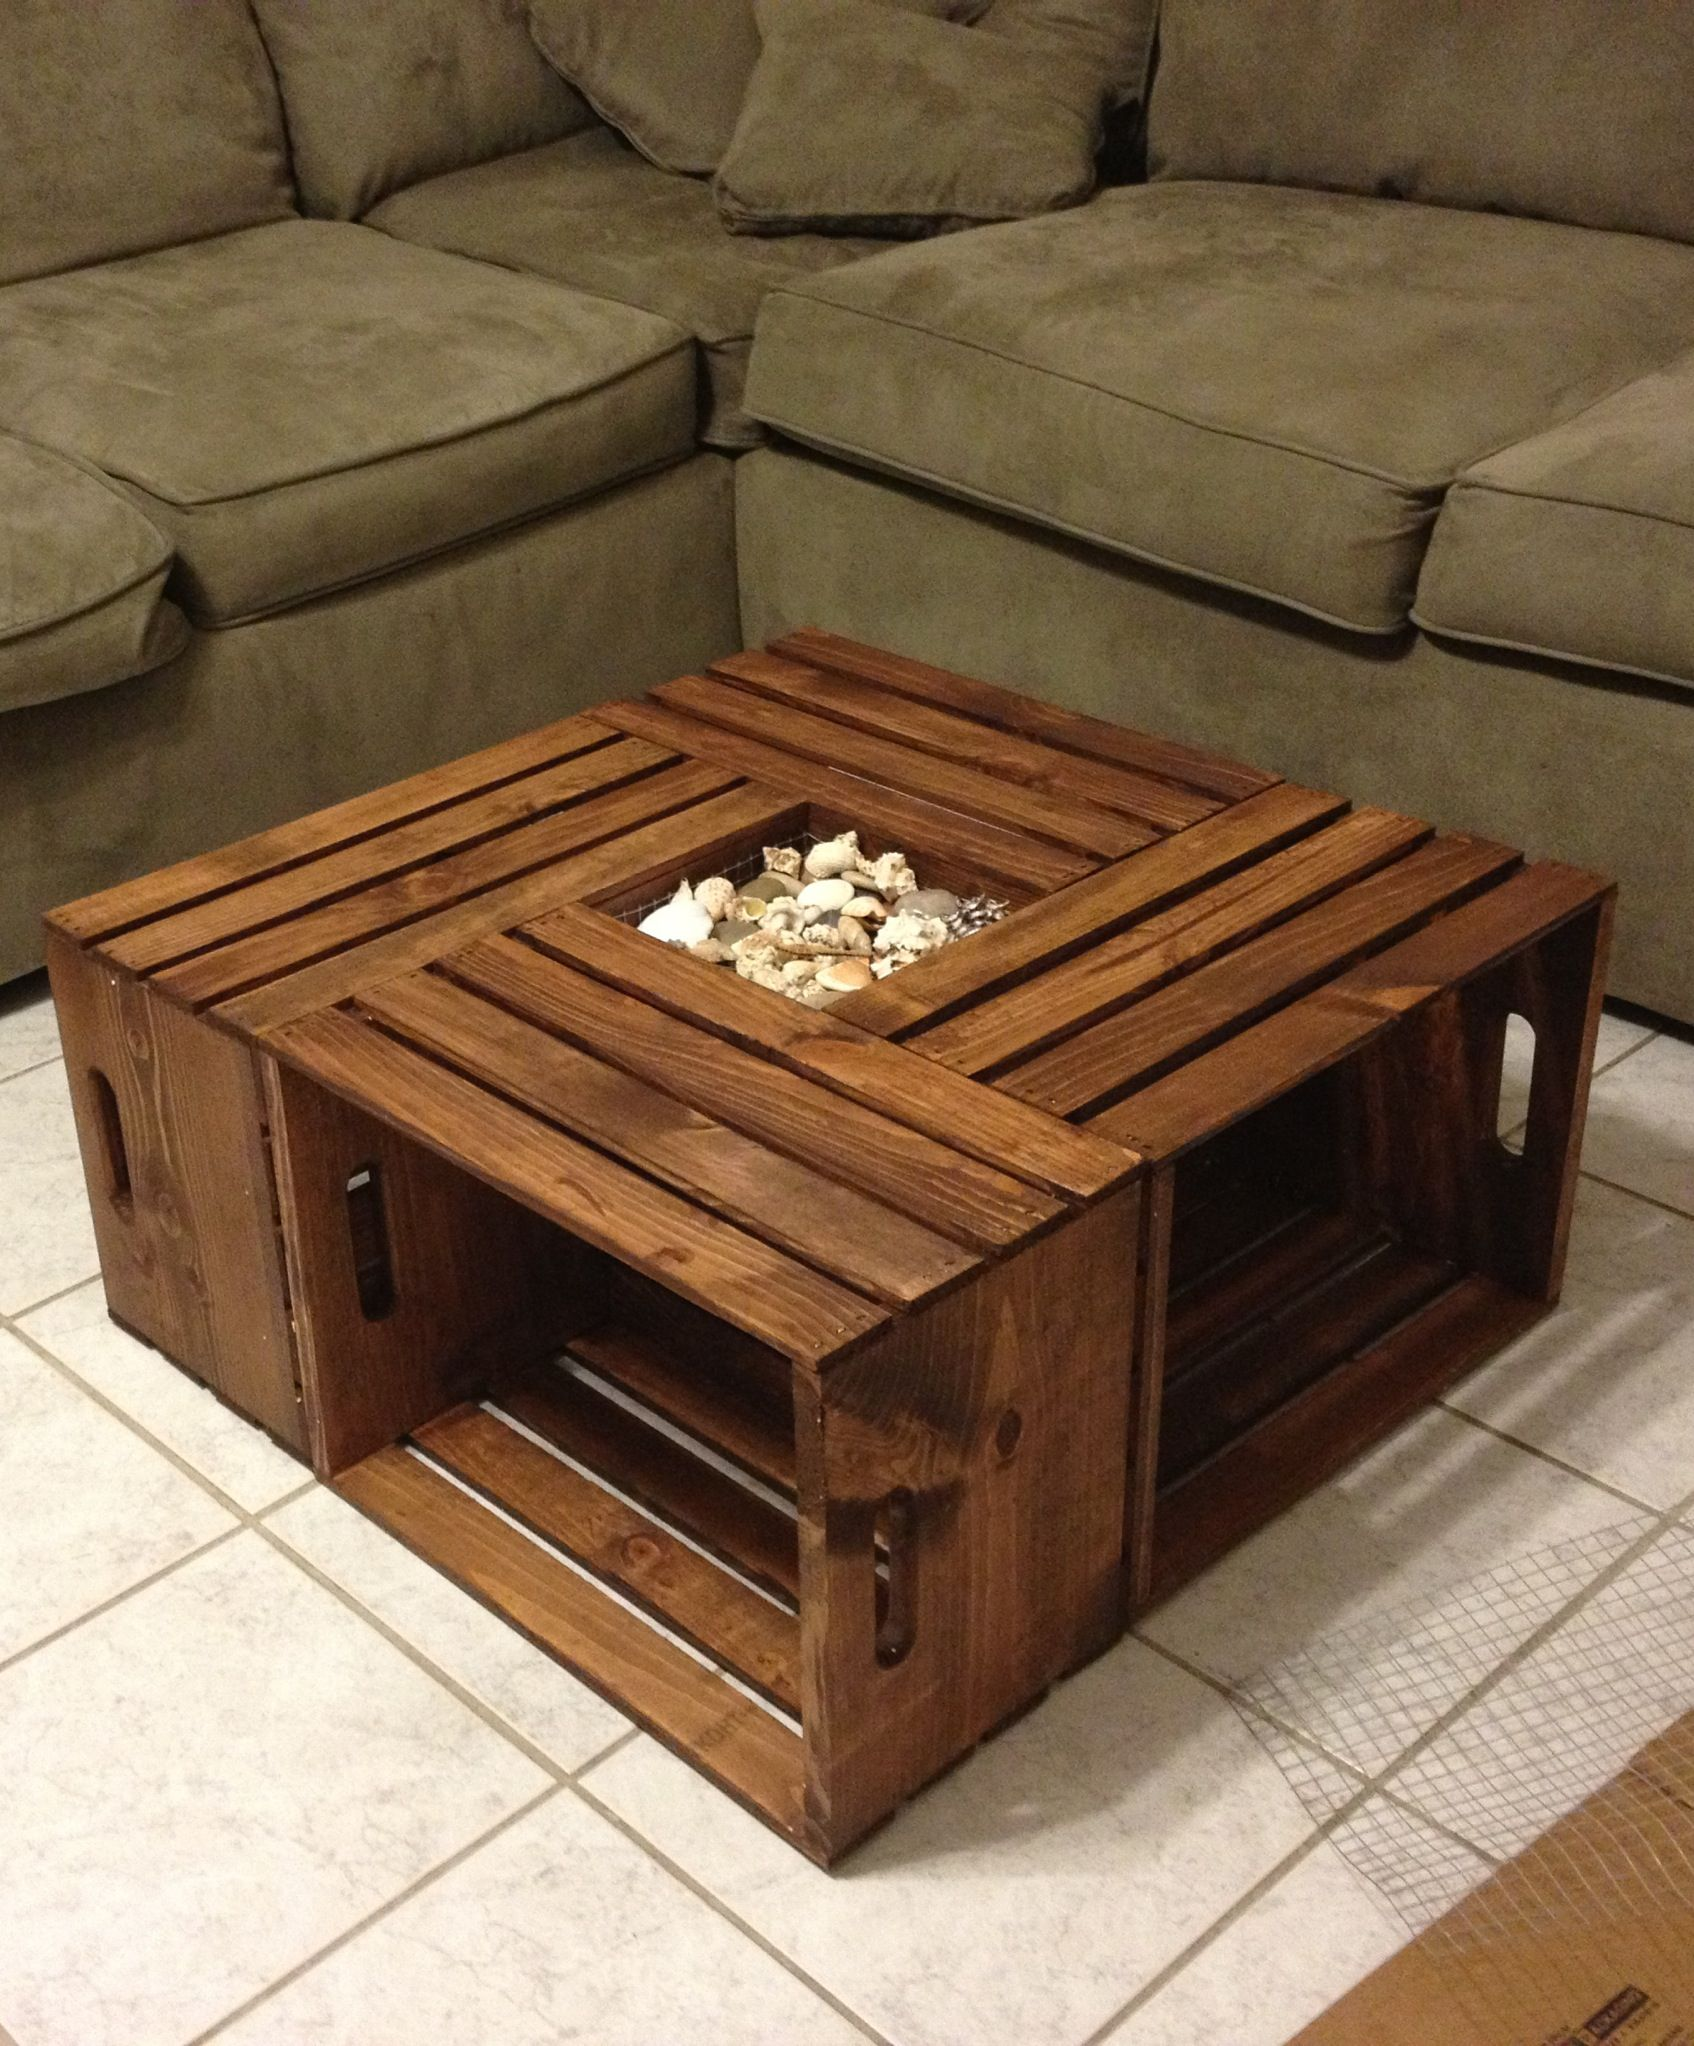 15 unique reclaimed pallet table ideas diy coffee table for Cool coffee tables diy